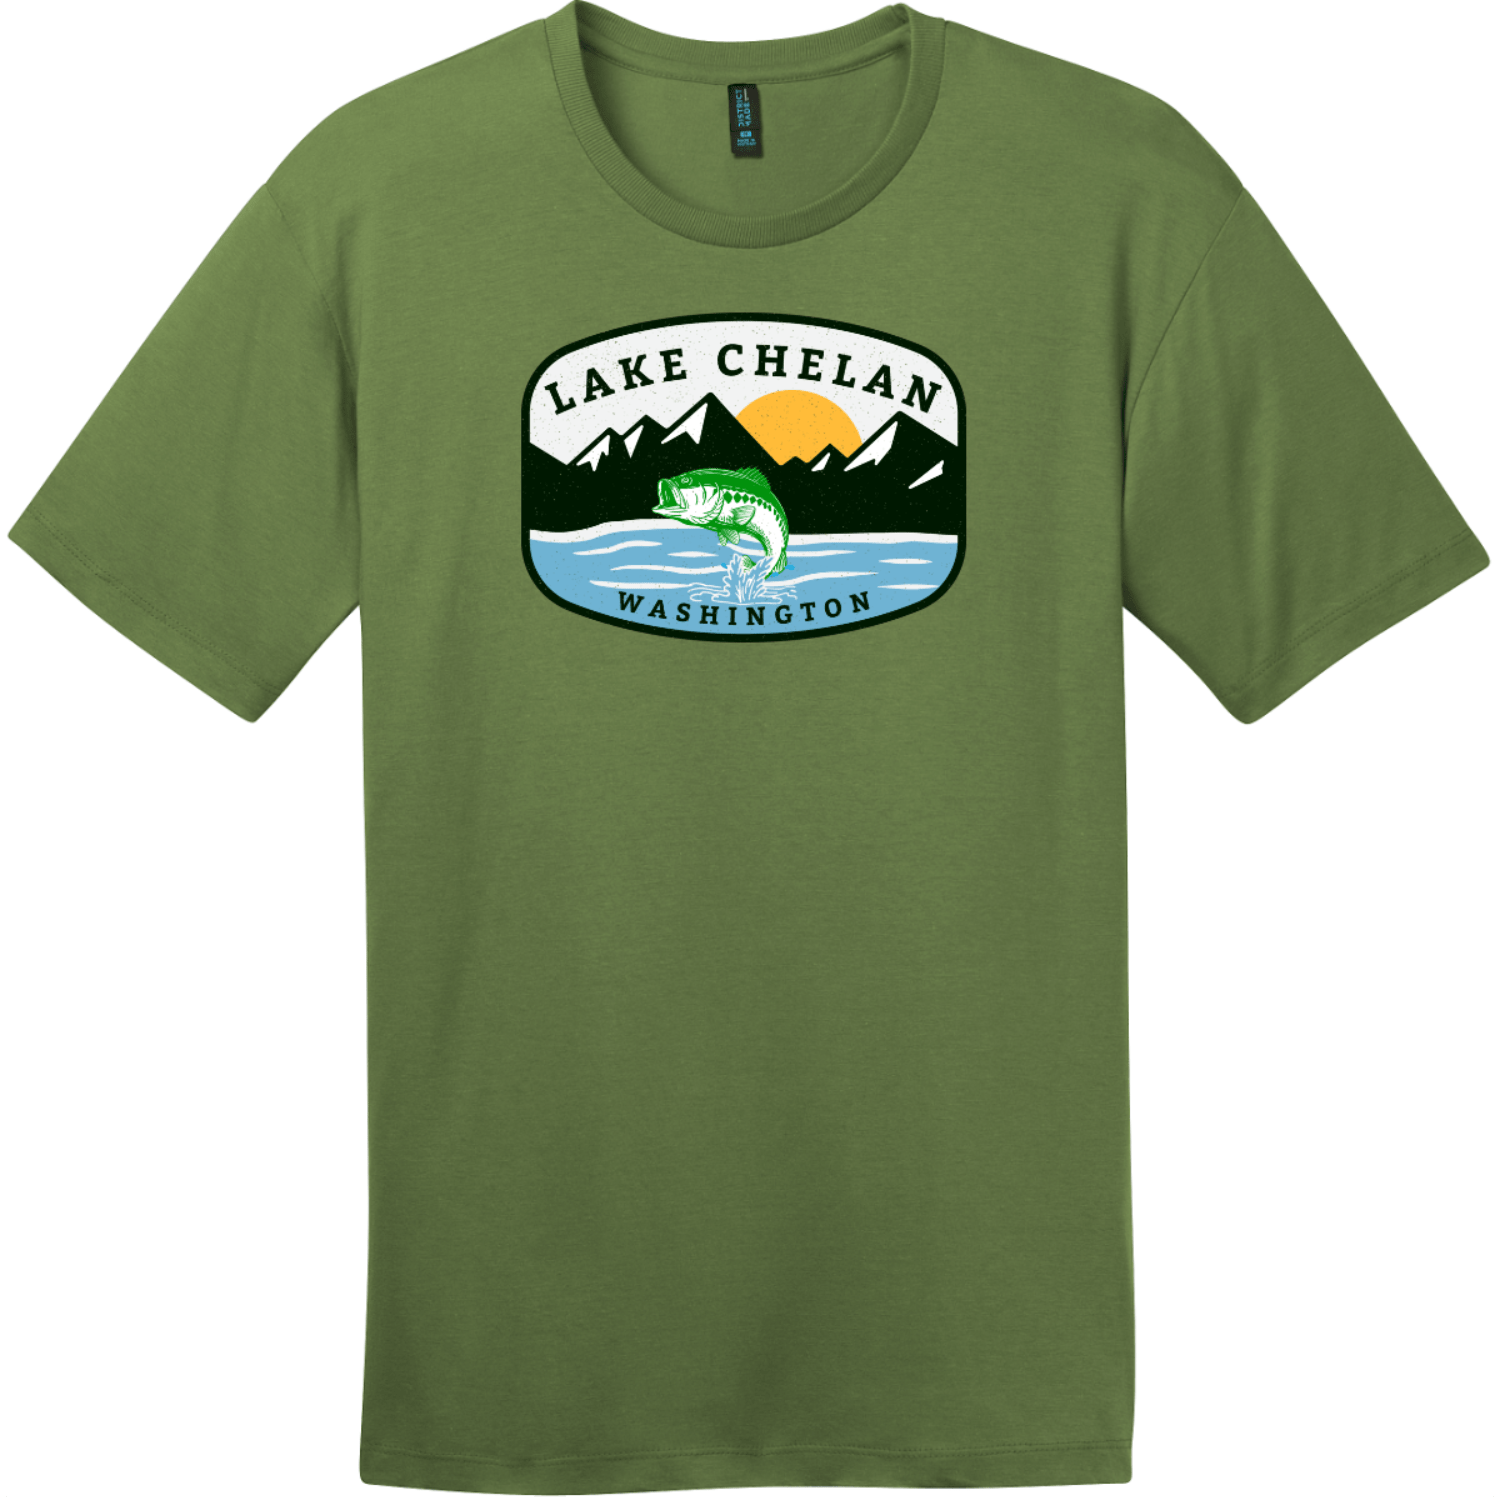 Lake Chelan Washington Fishing T-Shirt Fresh Fatigue District Perfect Weight Tee DT104